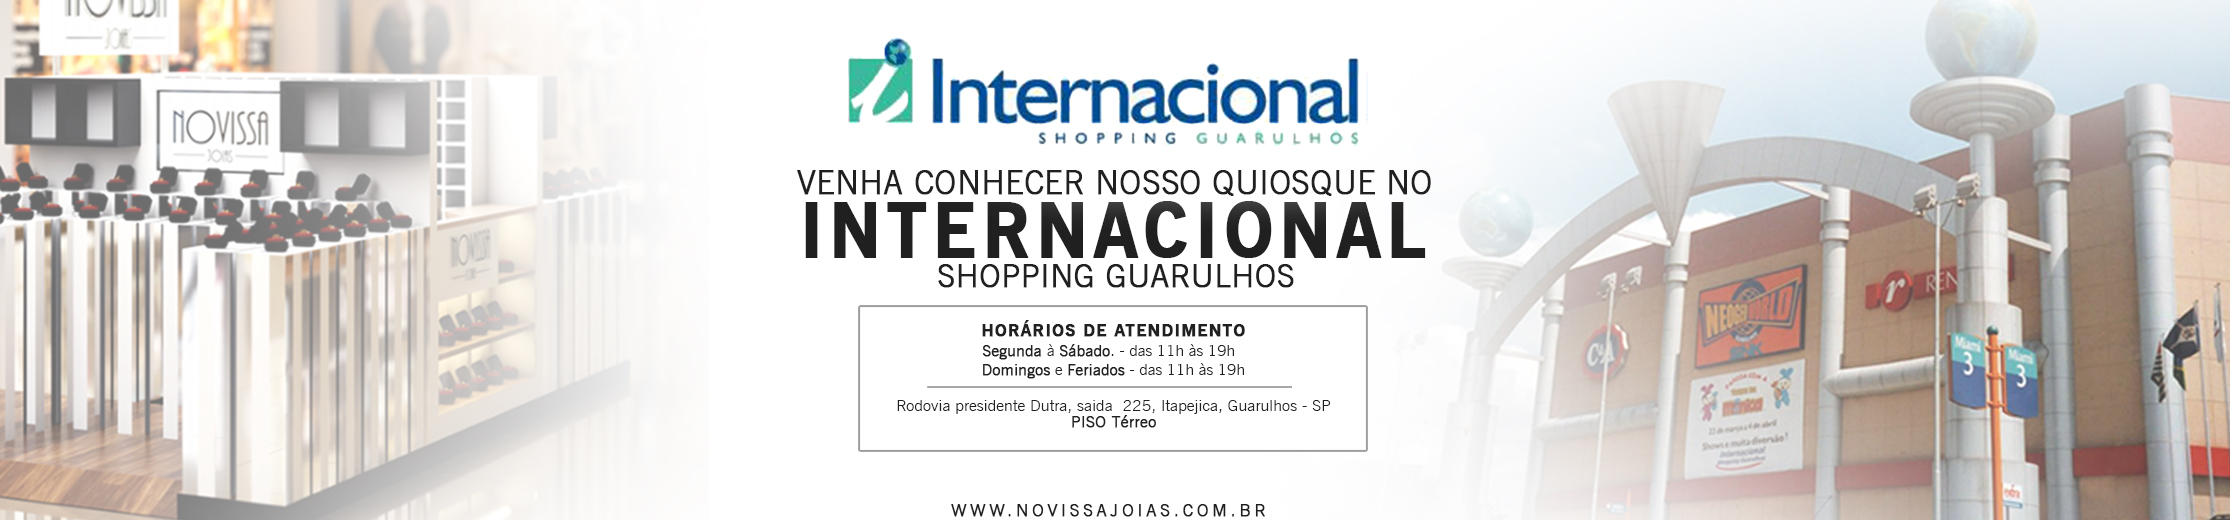 banner Internacional Shopping